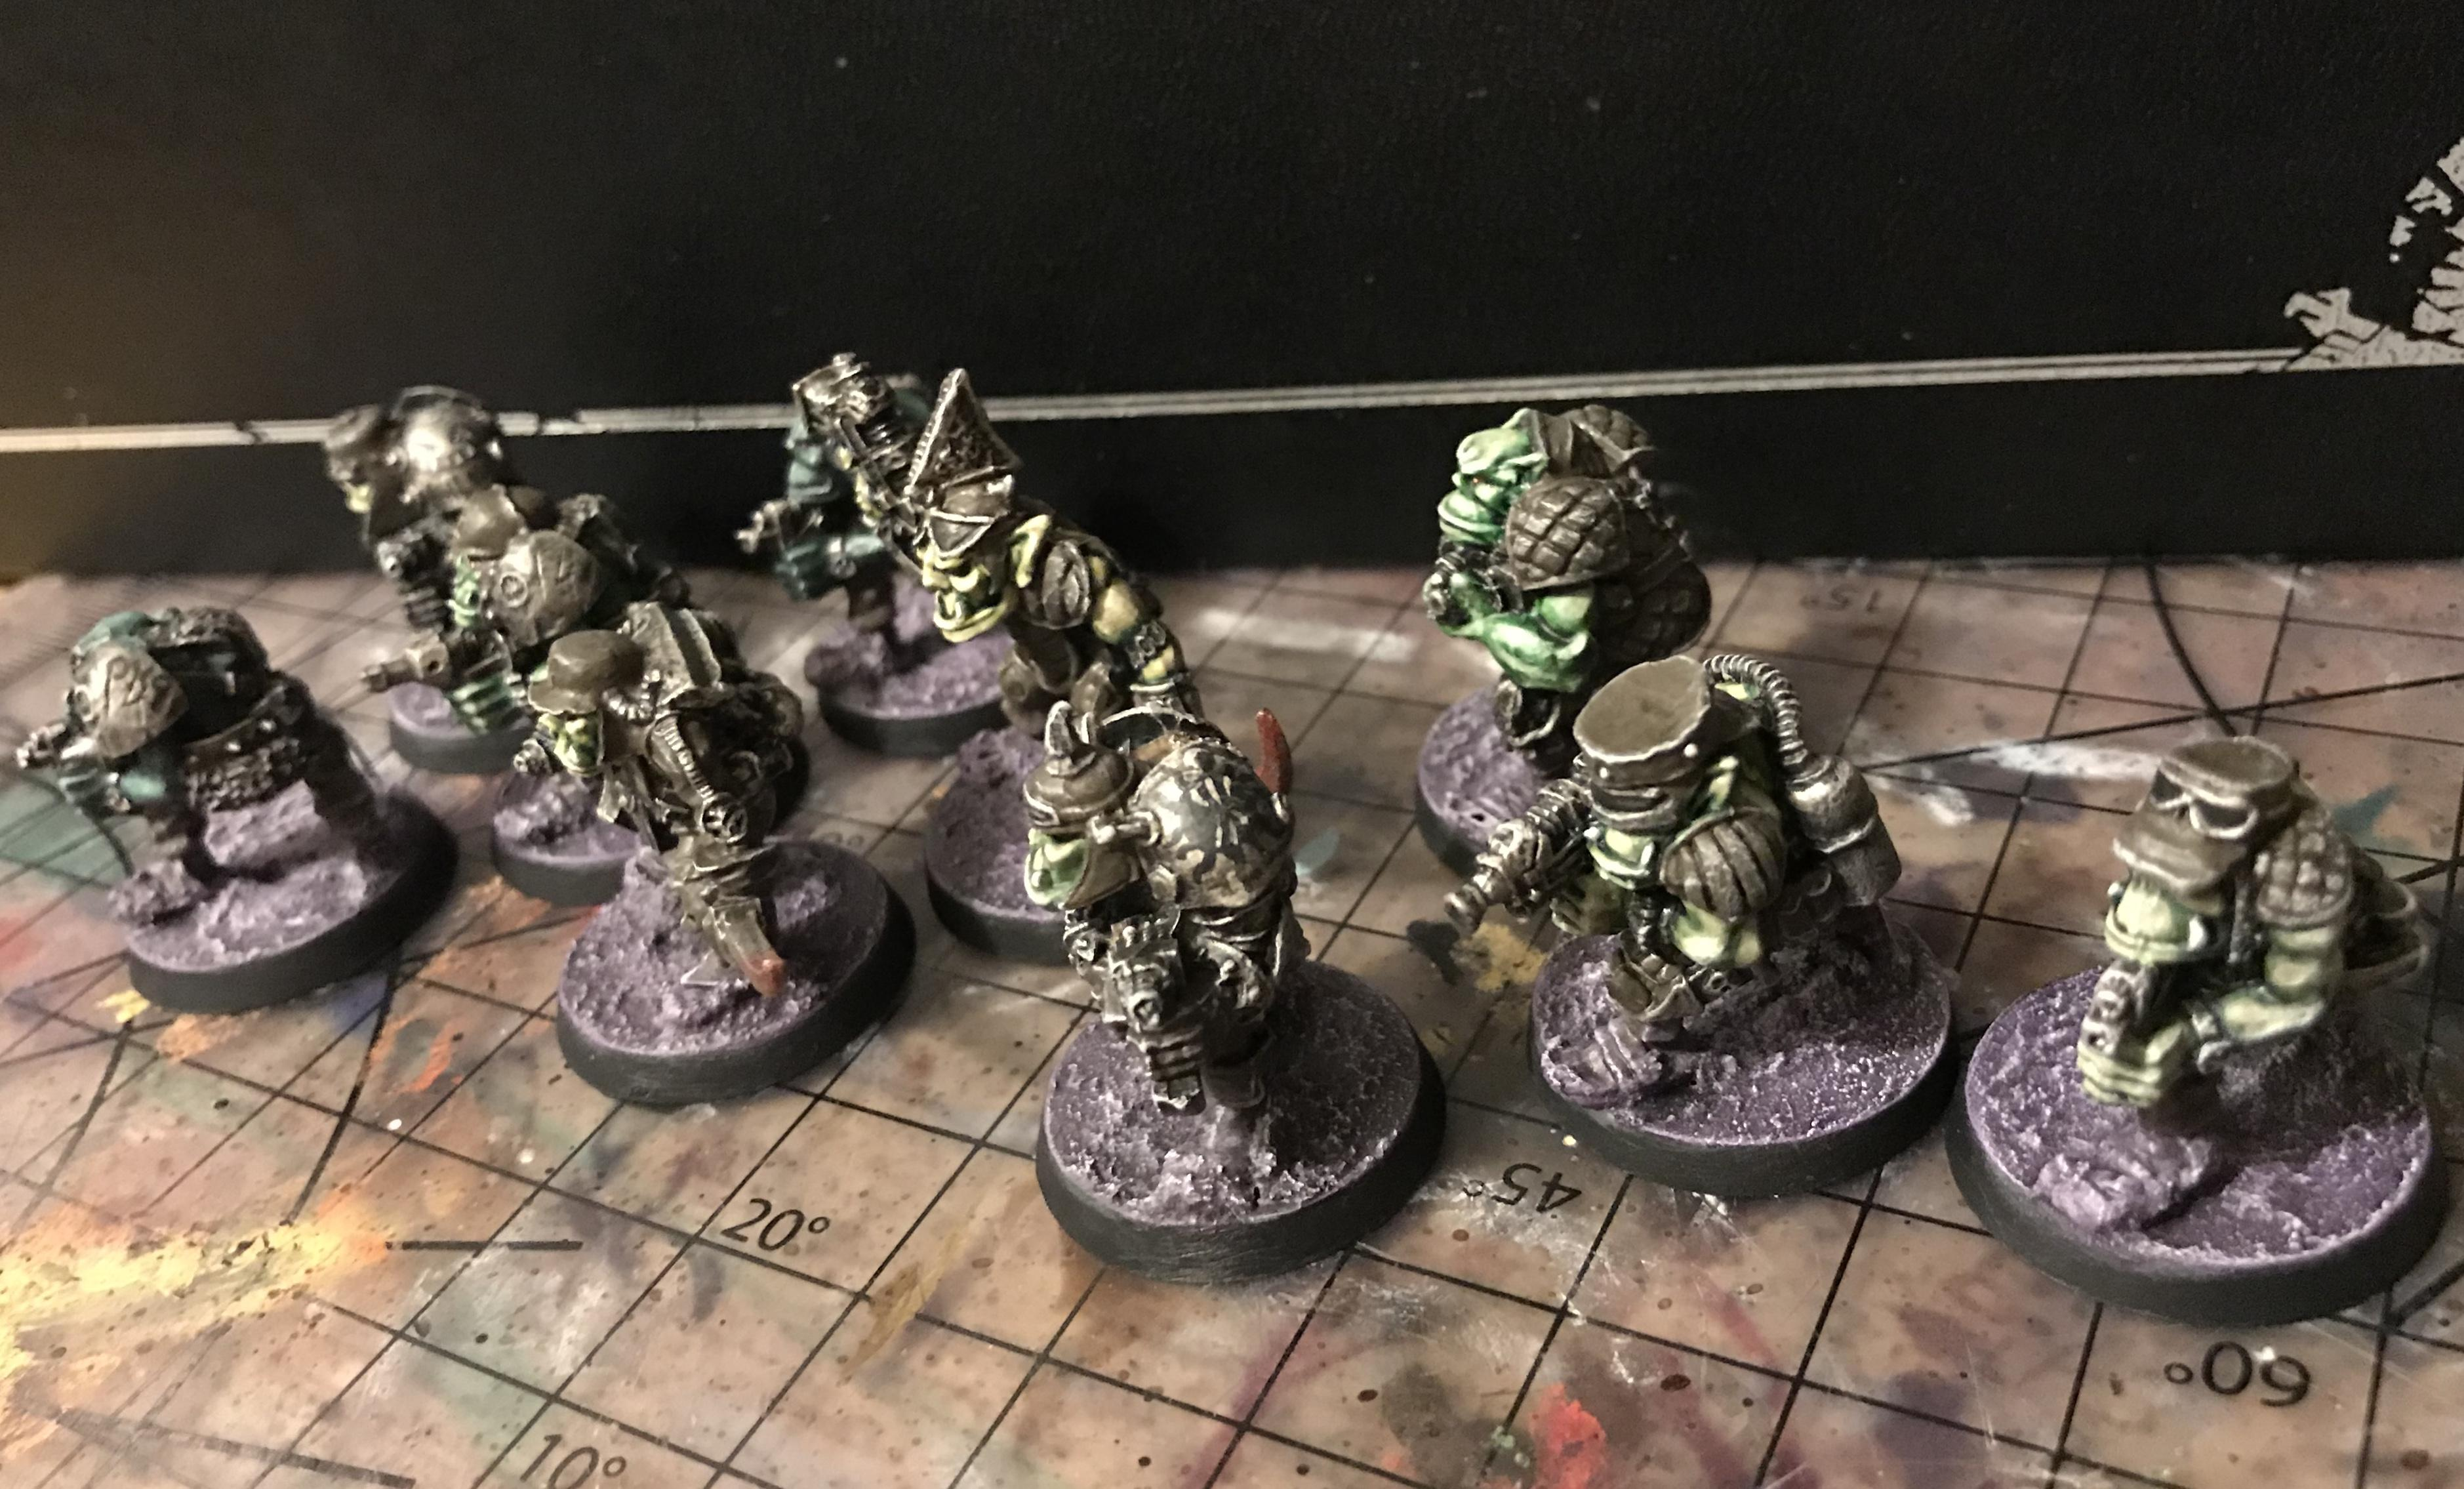 1st, Age, Army, Axes, Battle, Battles, Blood, Boy, Dark, Dark Angels, Darkness, Edition, Era, Evil, Folklore, Foundry, Gitz, Gloomspite, Goblinoid, Goblins, Green, Greenskin, Greenskinz, Grots, Horde, Looney, Miniatures, Mischievous, Mordheim, Mushrooms, Night, Of, Oldhammer, Orcoid, Orcs, Orks, Orky, Play, Realm, Realms, Rogue, Role, Shroom, Shrooms, Skirmish, Small, Tiny, Trader, Warband, Wargames, Wargaming, Warhammer 40,000, Warhammer Fantasy, Warmonger